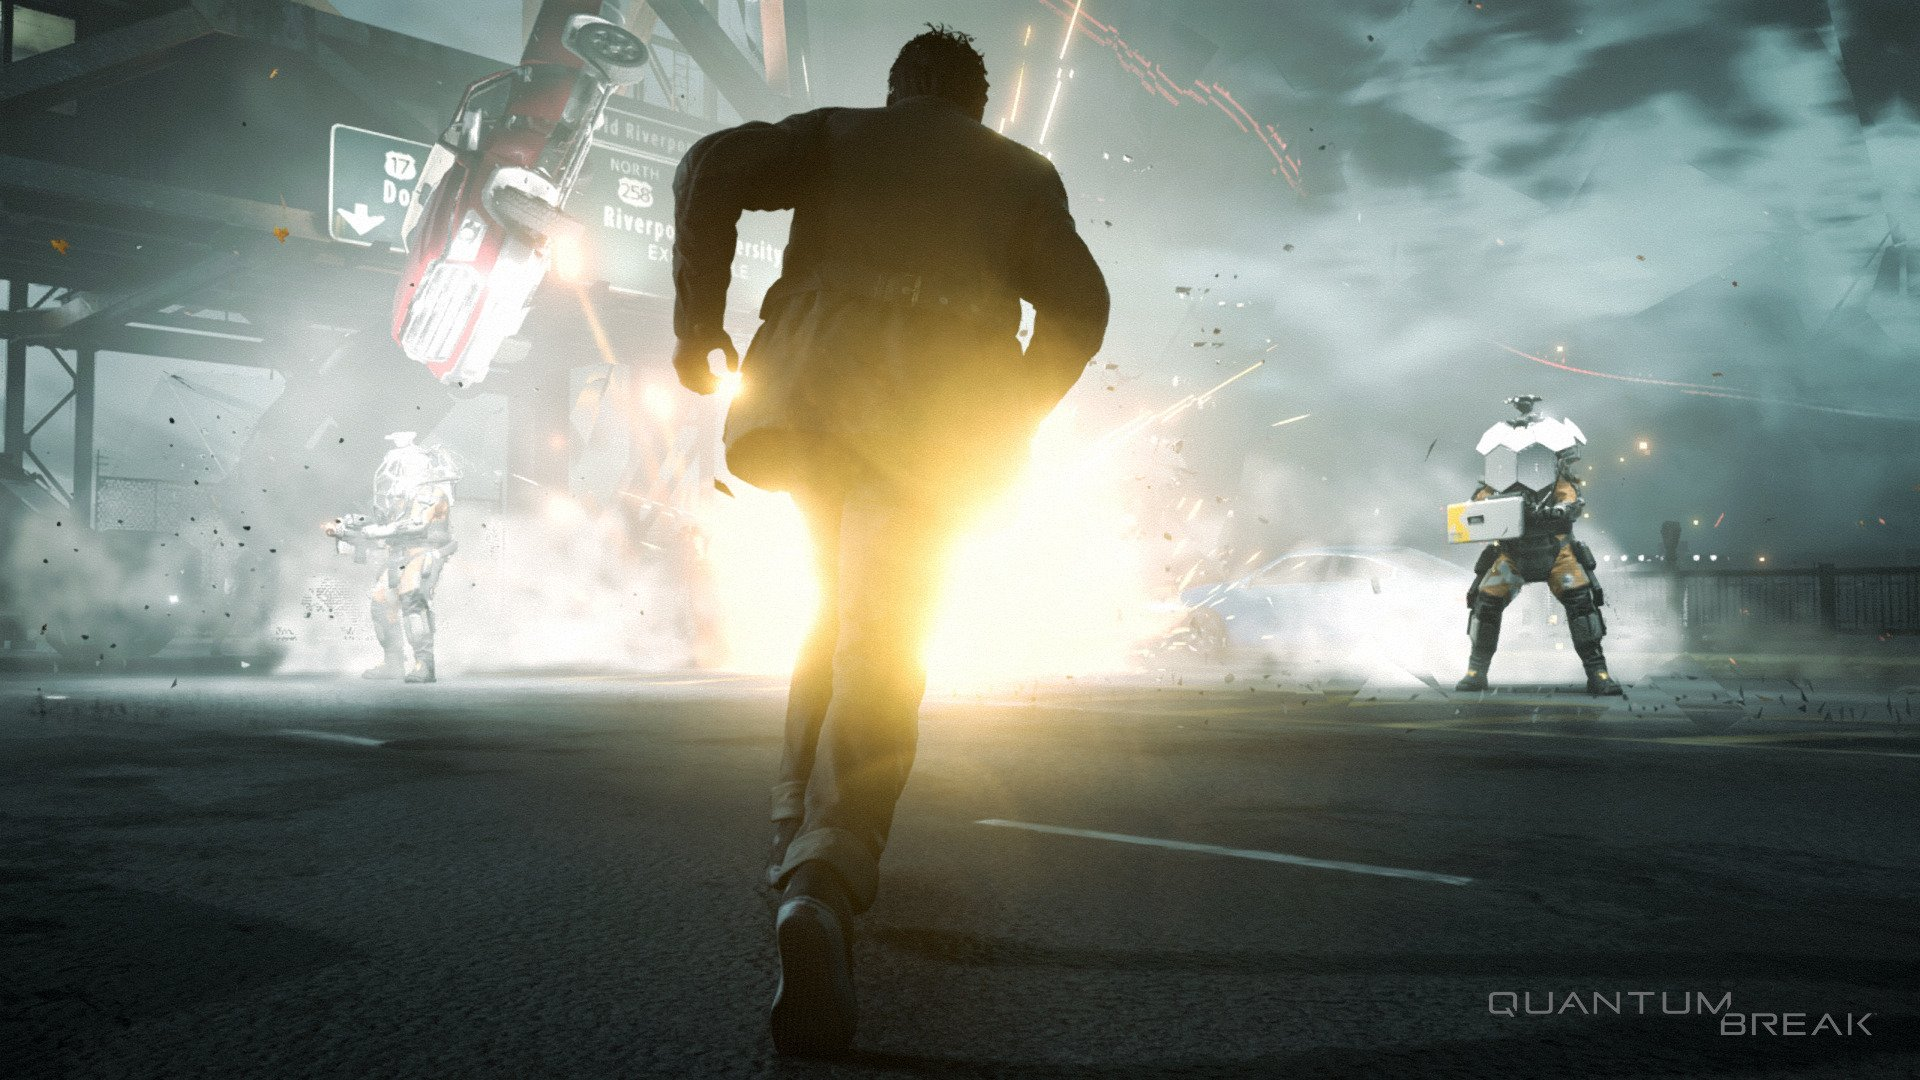 Quantum-Break-19.jpg - - quant, quantum, Quantum Break xbox one